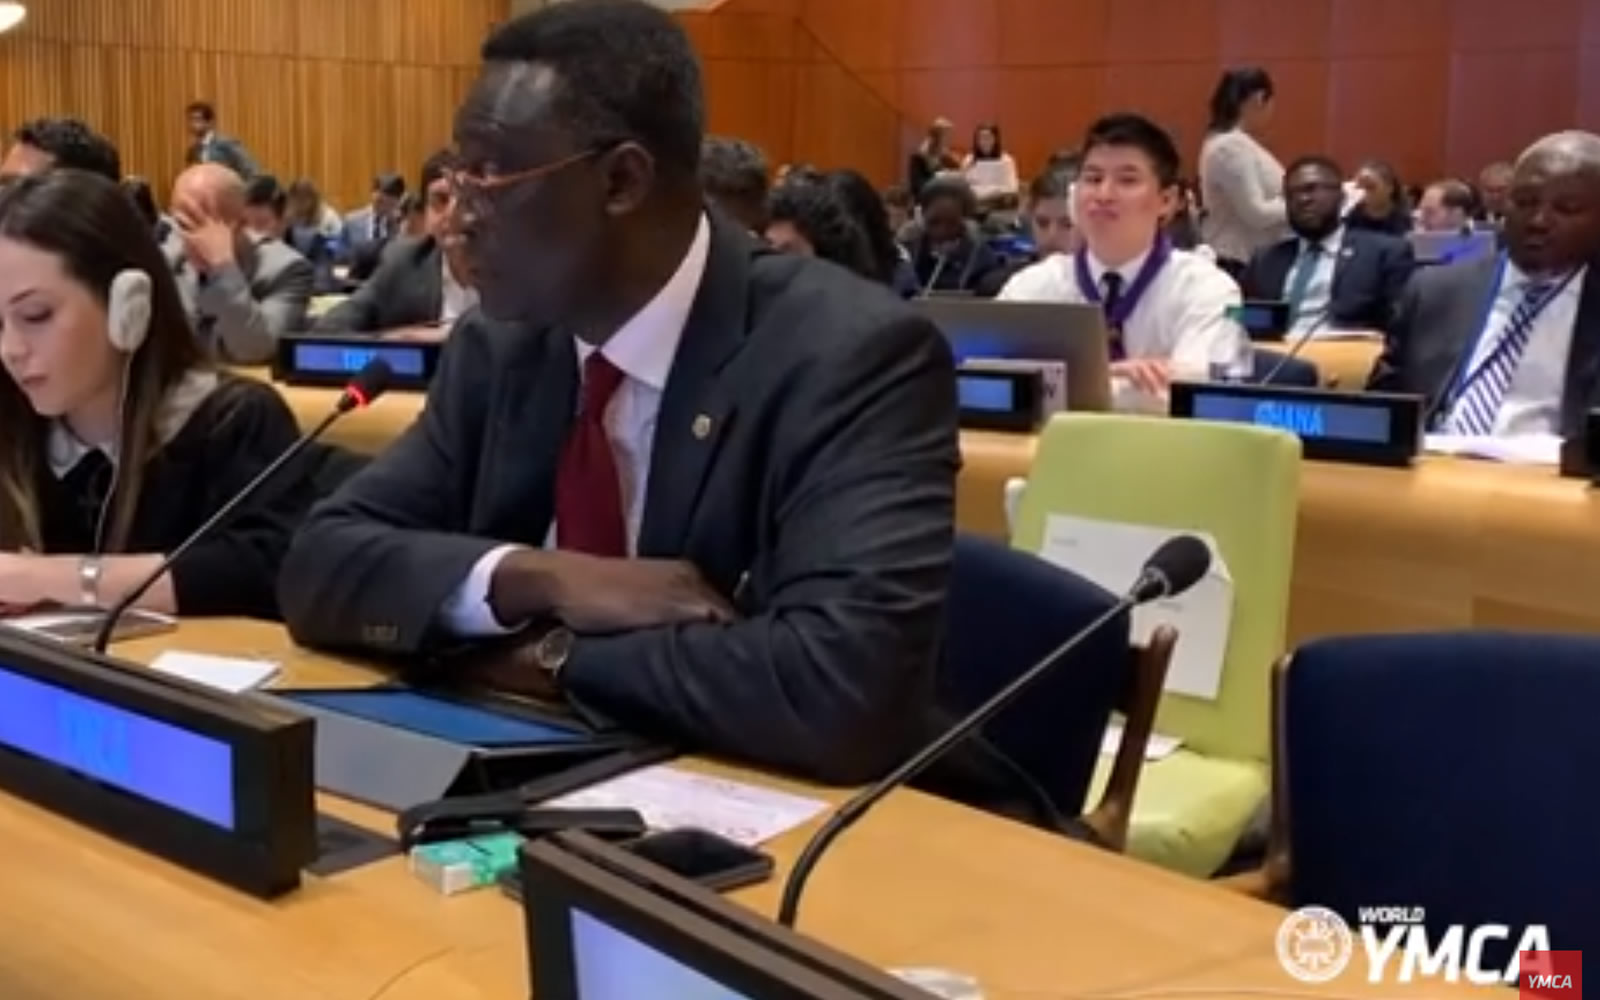 World YMCA submits statement to the UN